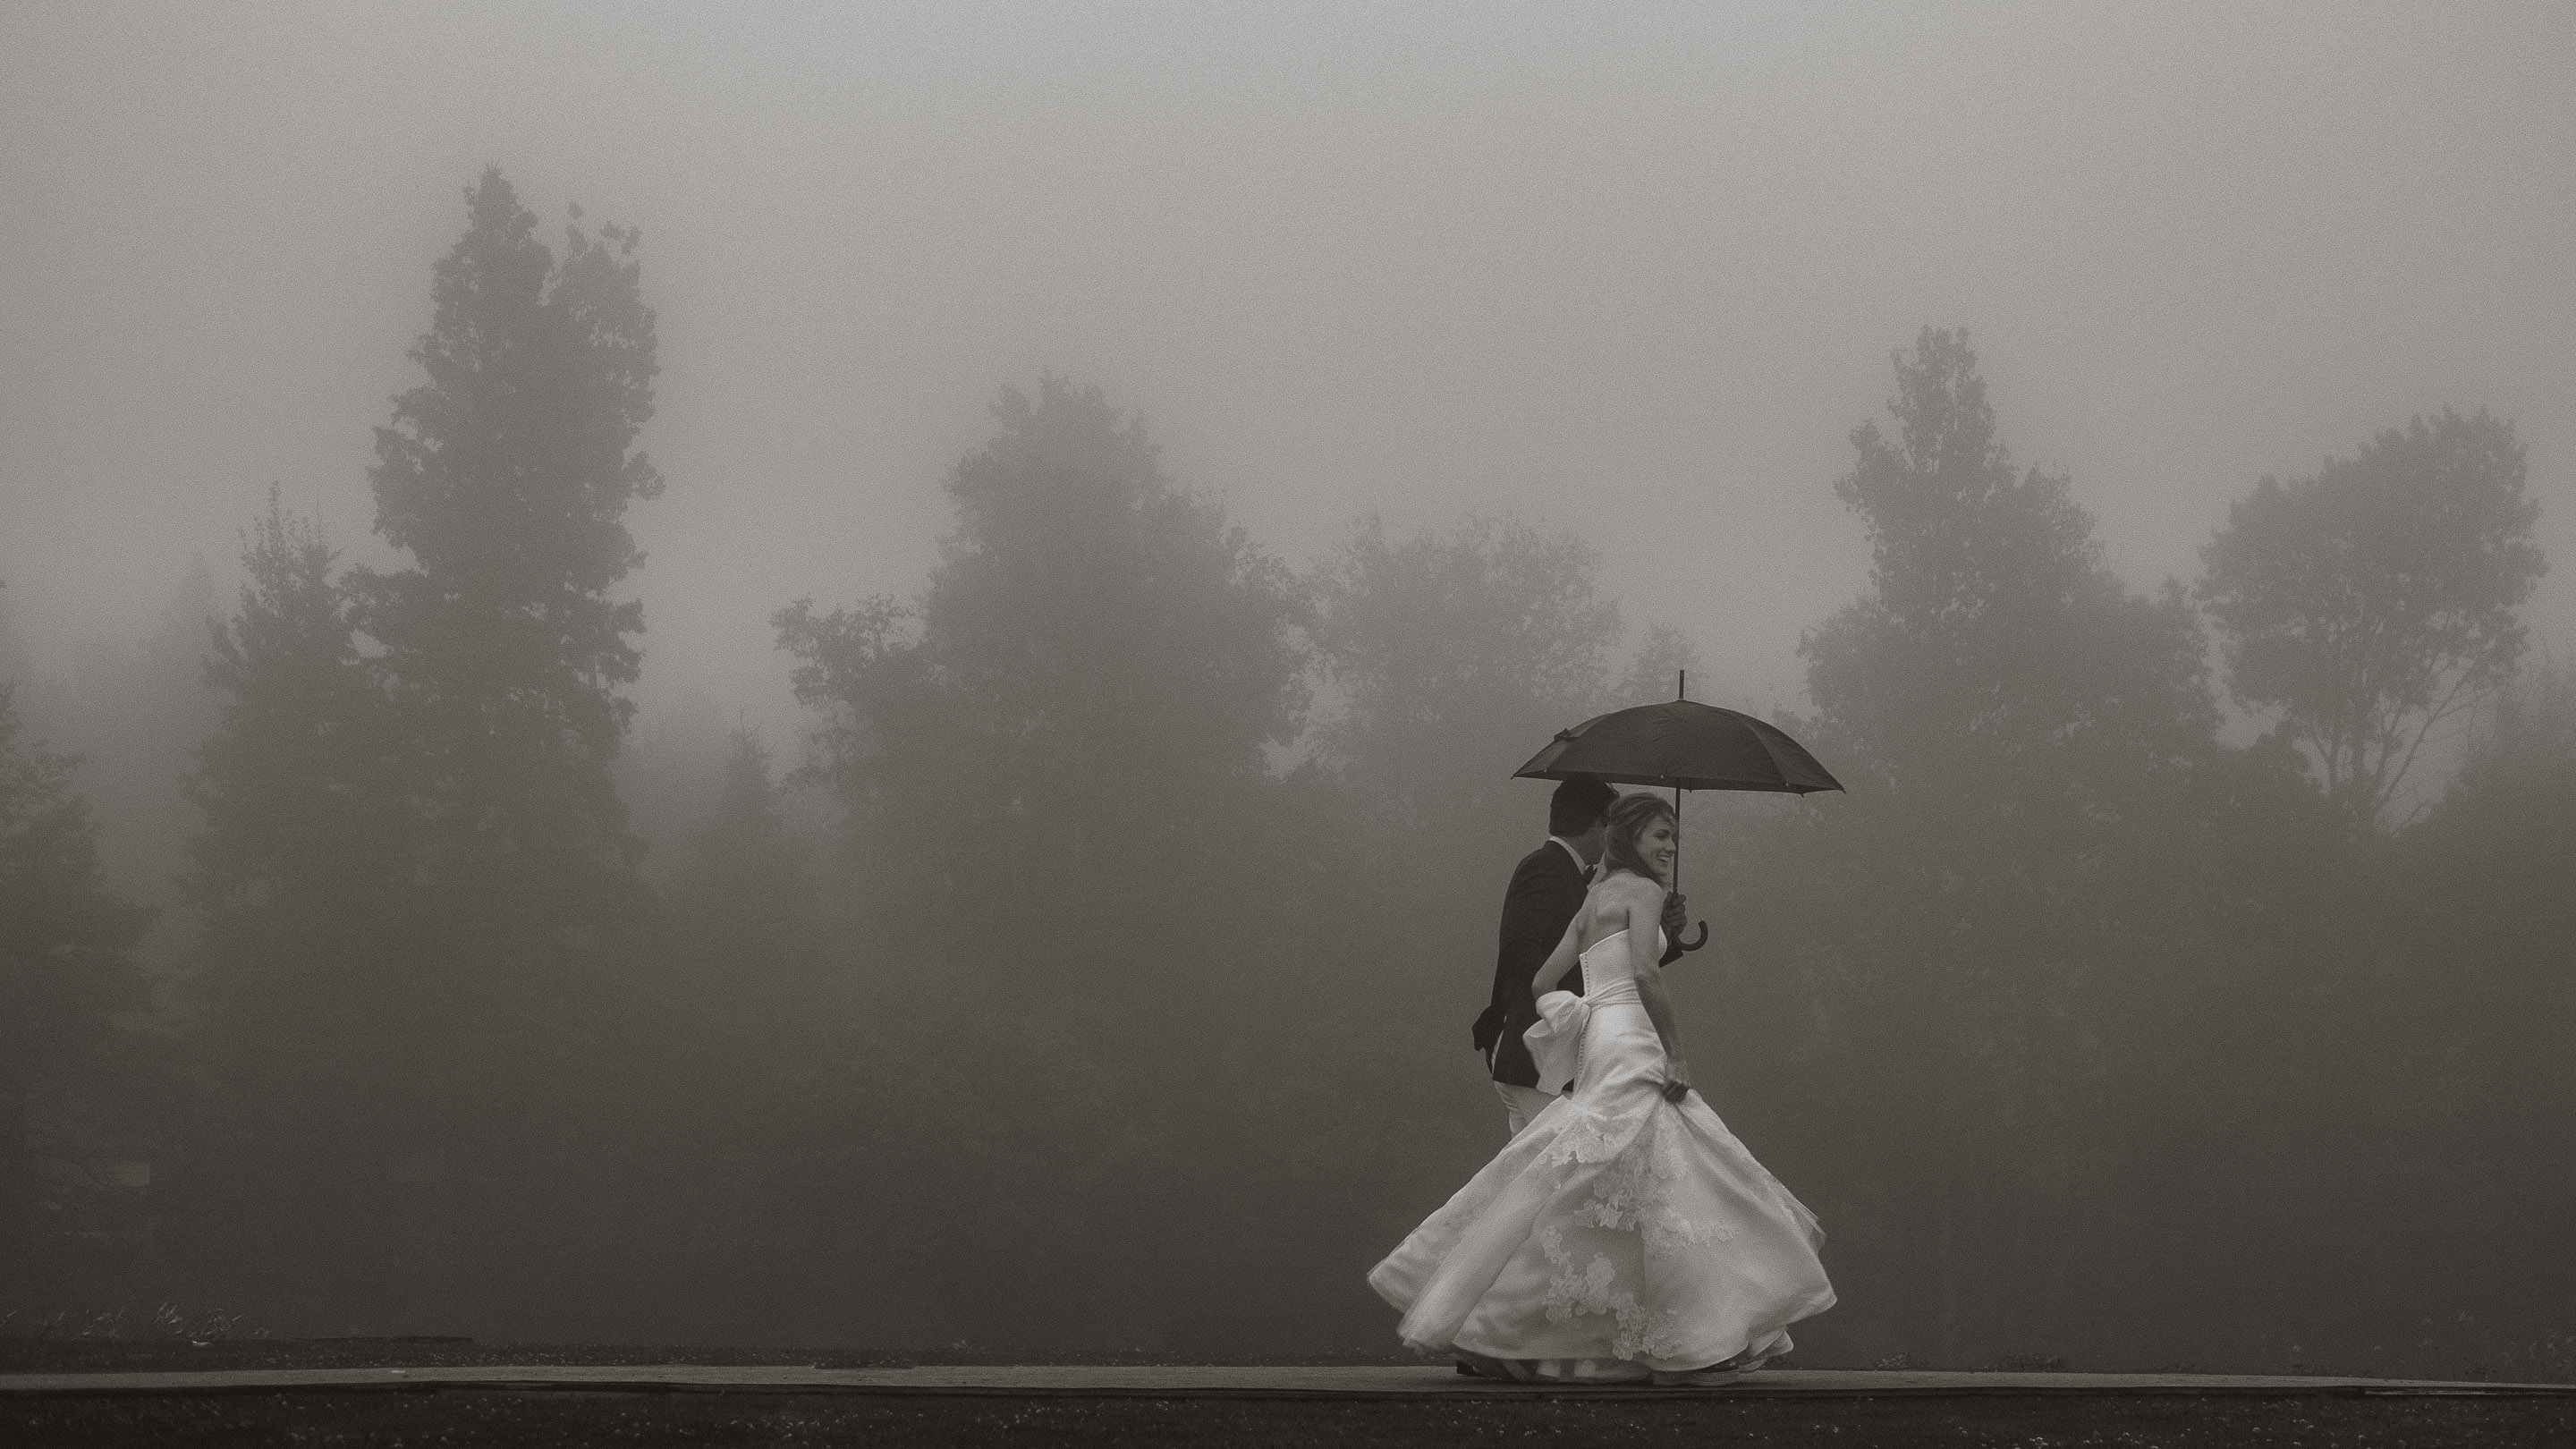 Couple walk with umbrella against misty trees - photo by Joel and Justyna